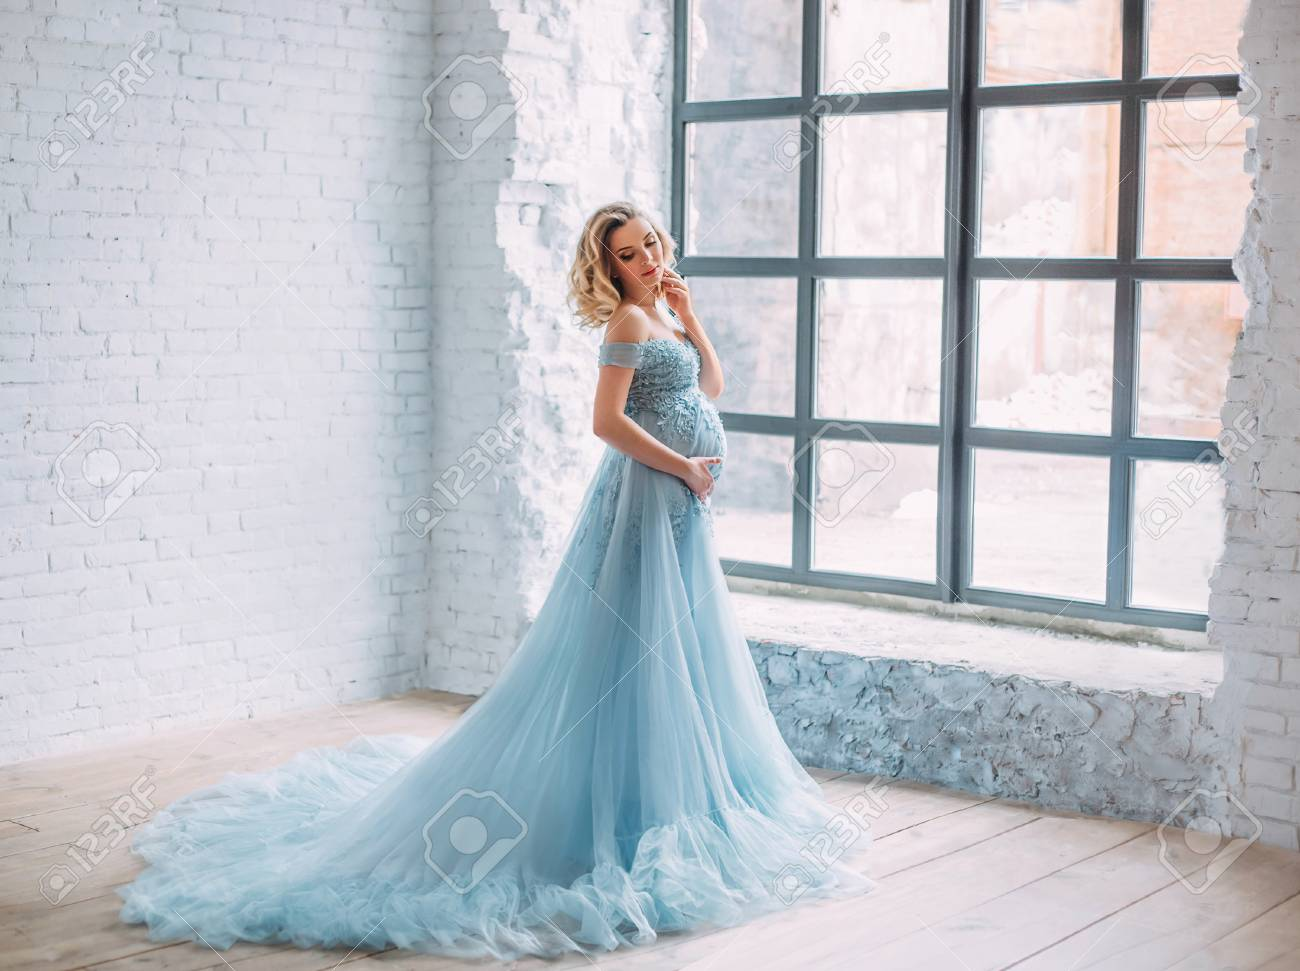 Young, Pregnant Woman Posing In A Luxurious, Lush, Blue Dress ...